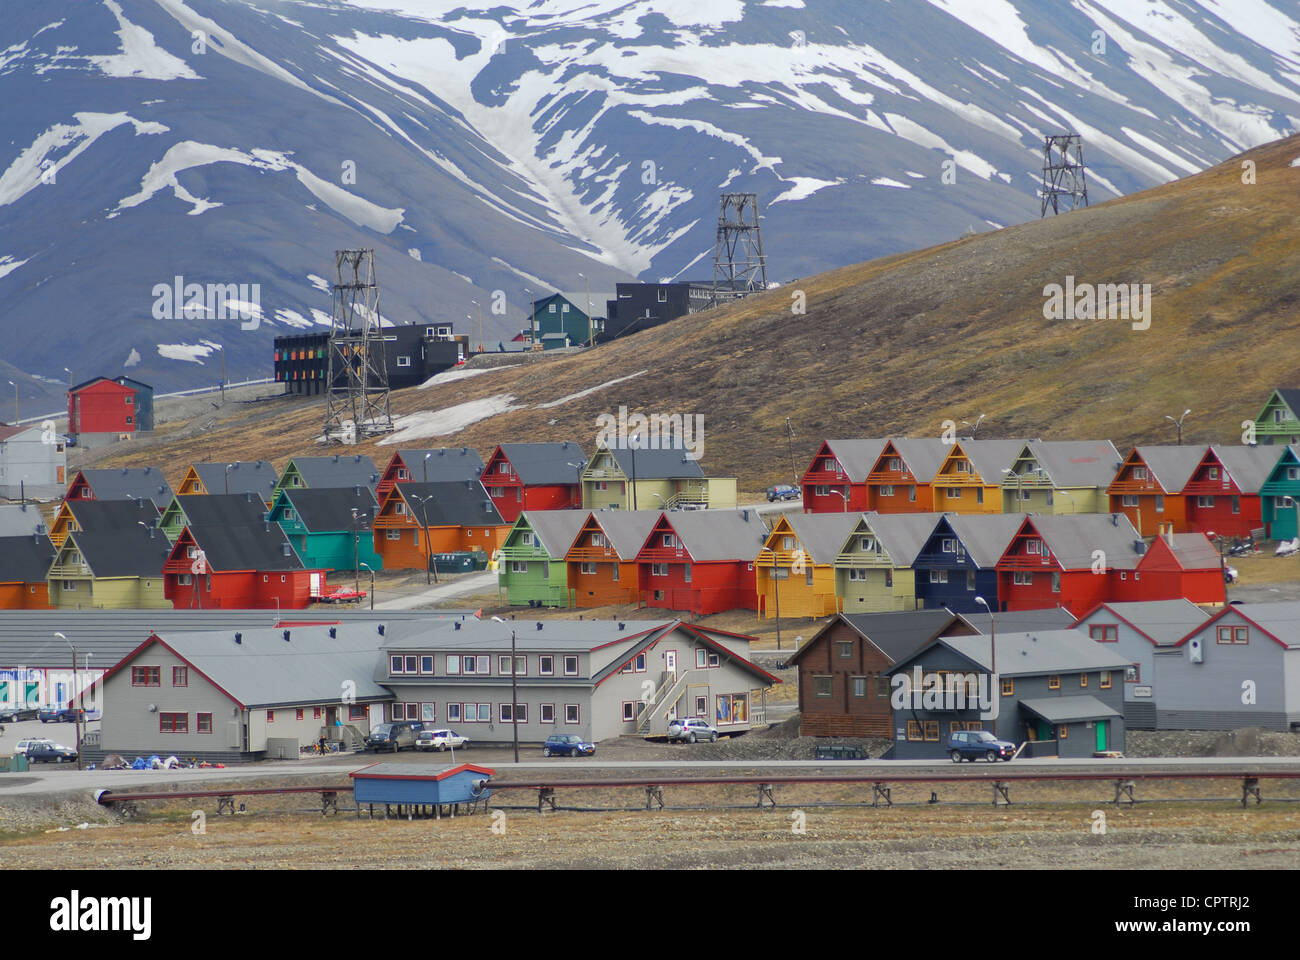 Rows of multicoloured homes in the town of Longyearbyen, Svalbard, Norway. - Stock Image